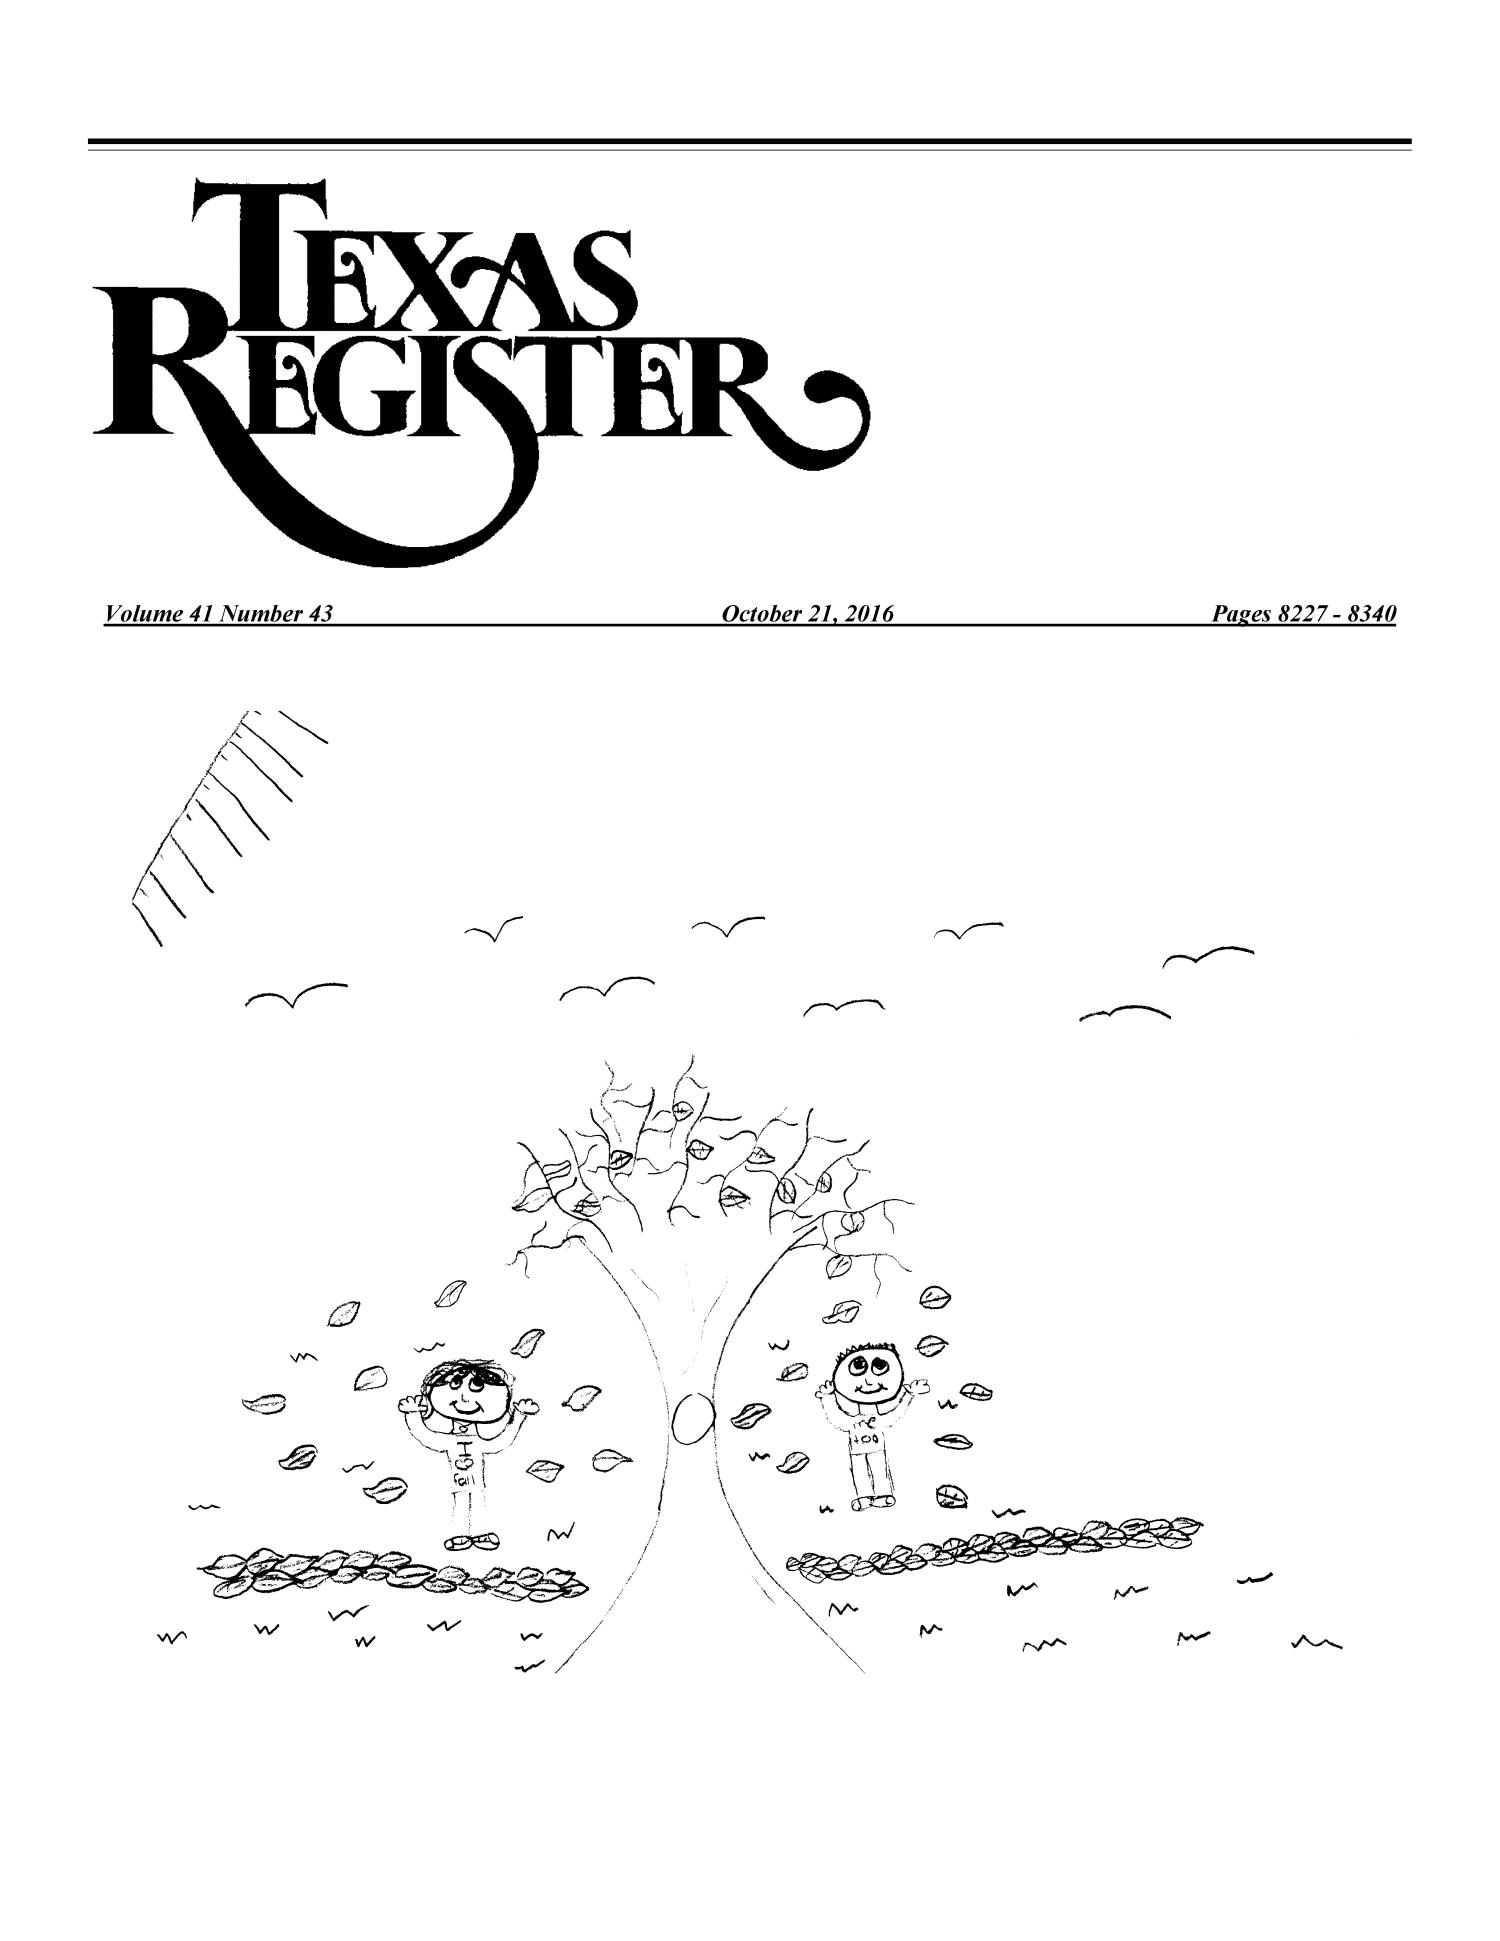 Texas Register, Volume 41, Number 43, Pages 8227-8340, October 21, 2016                                                                                                      Title Page